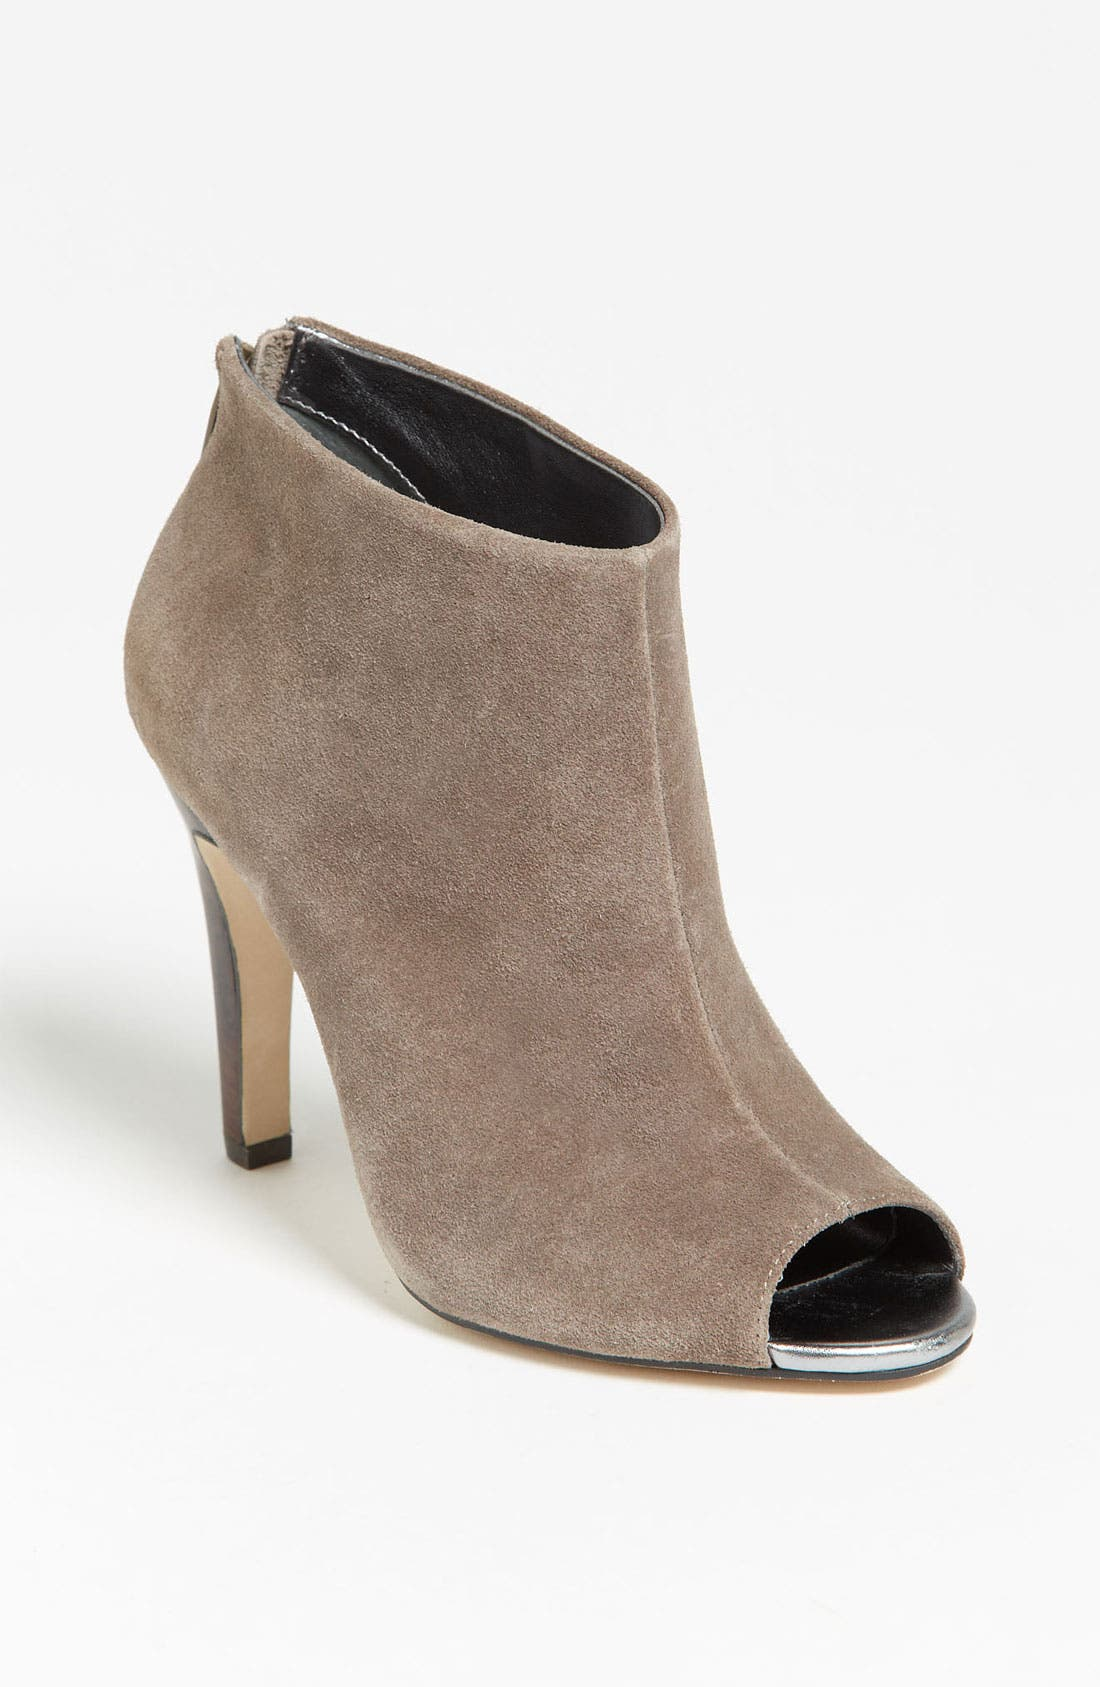 Alternate Image 1 Selected - Julianne Hough for Sole Society 'Angela' Bootie